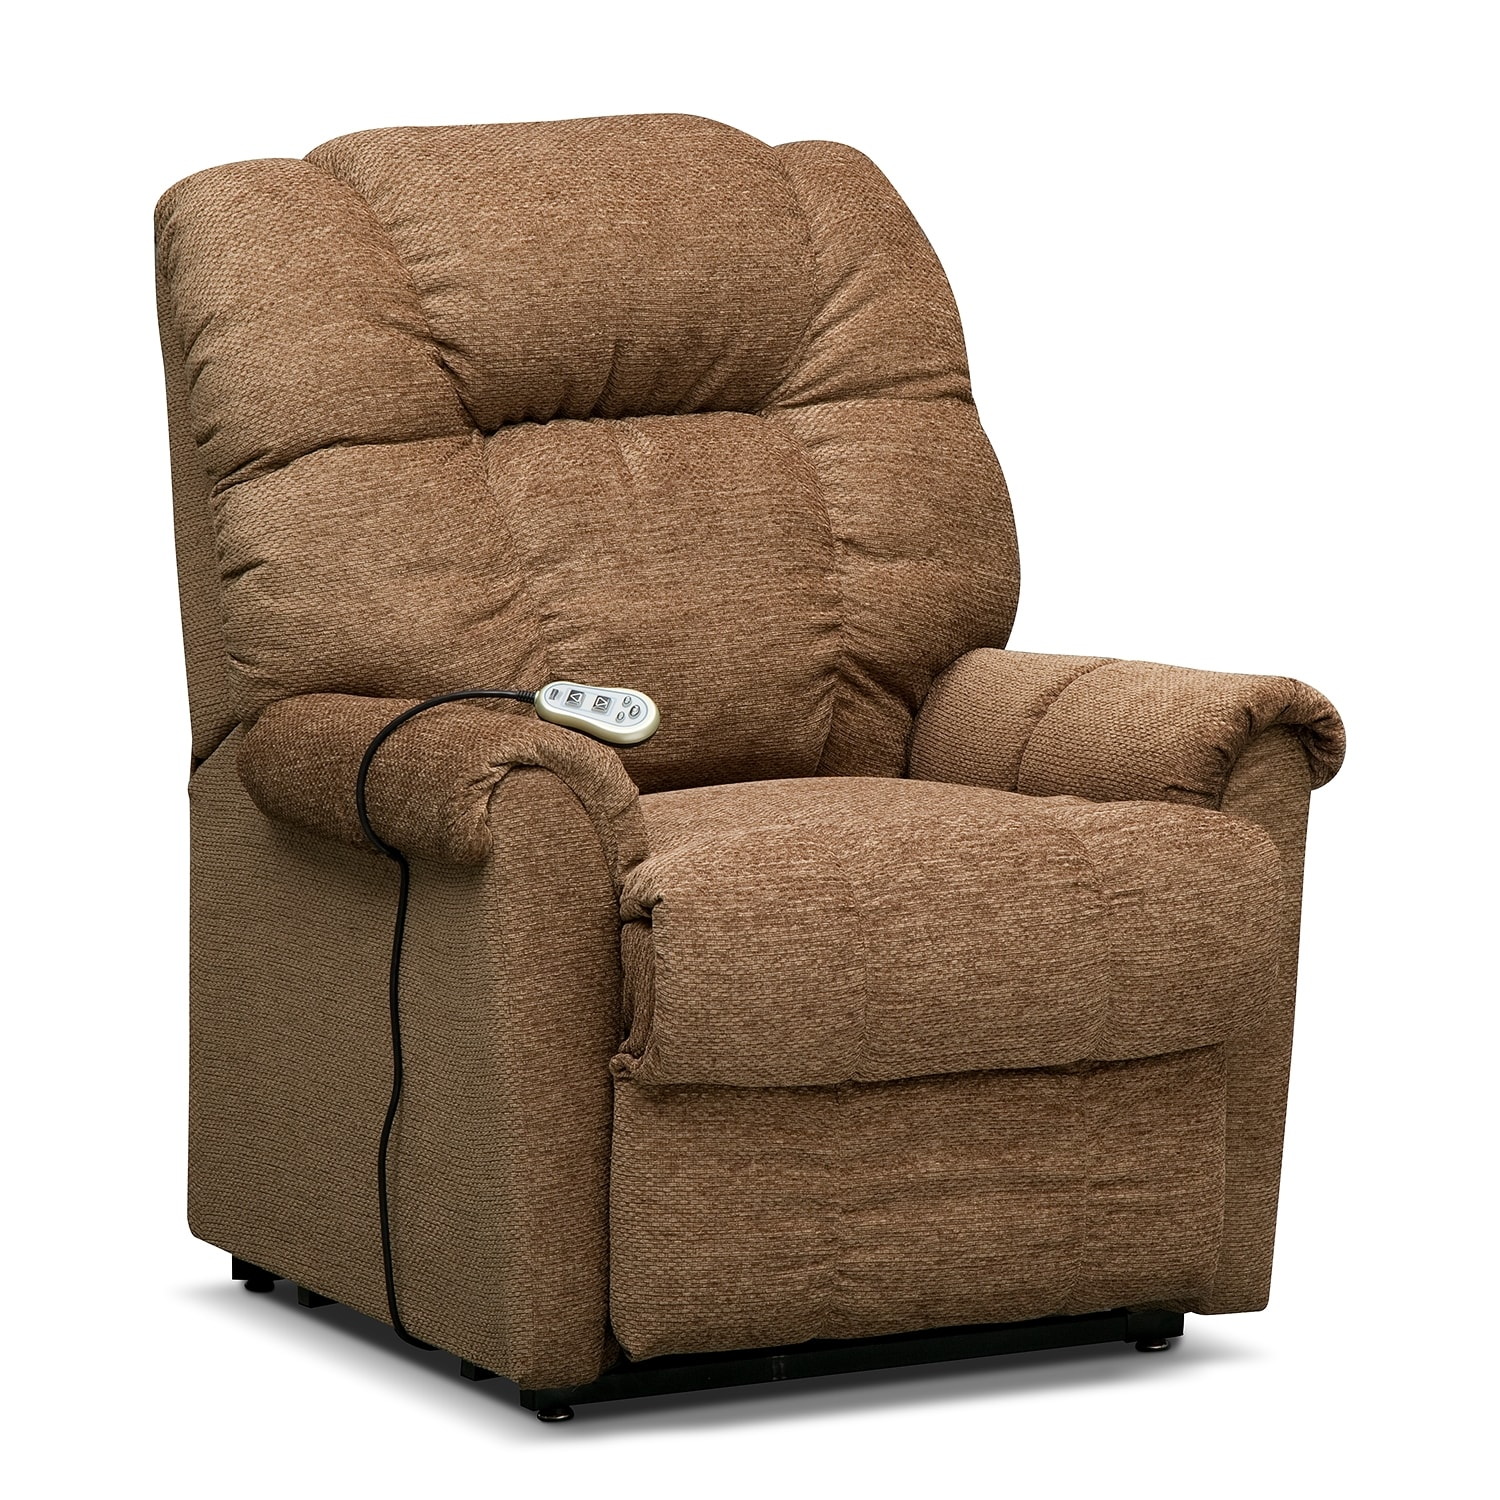 Living Room Furniture - Vantage Small Power Lift Massage Chair - Bark